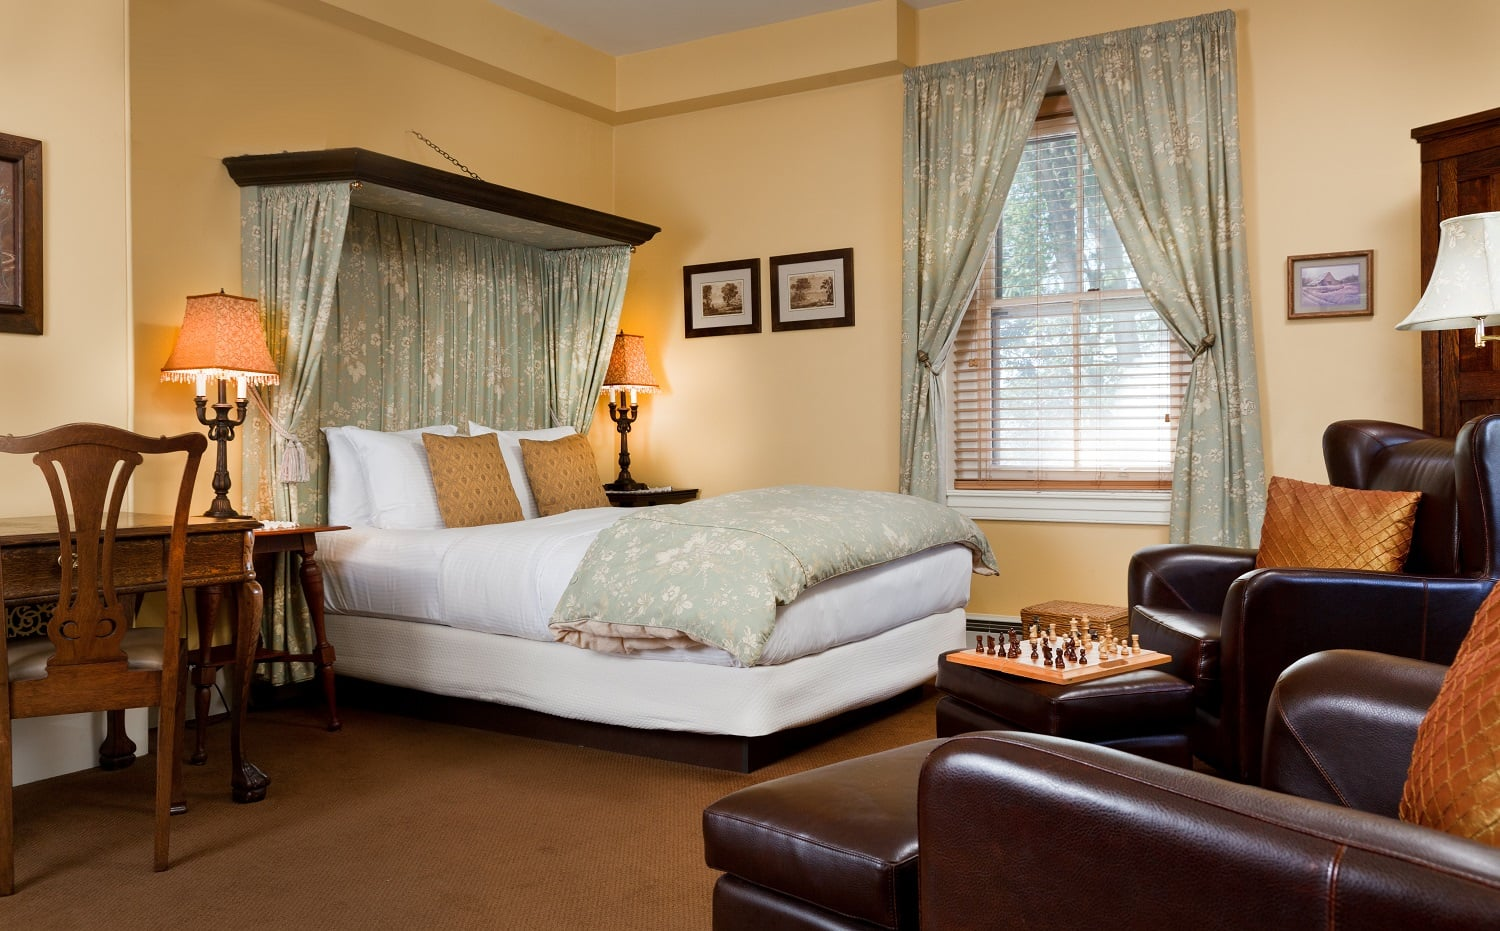 bethlehem pa bed and breakfast | hotels in bethlehem pa | sayre